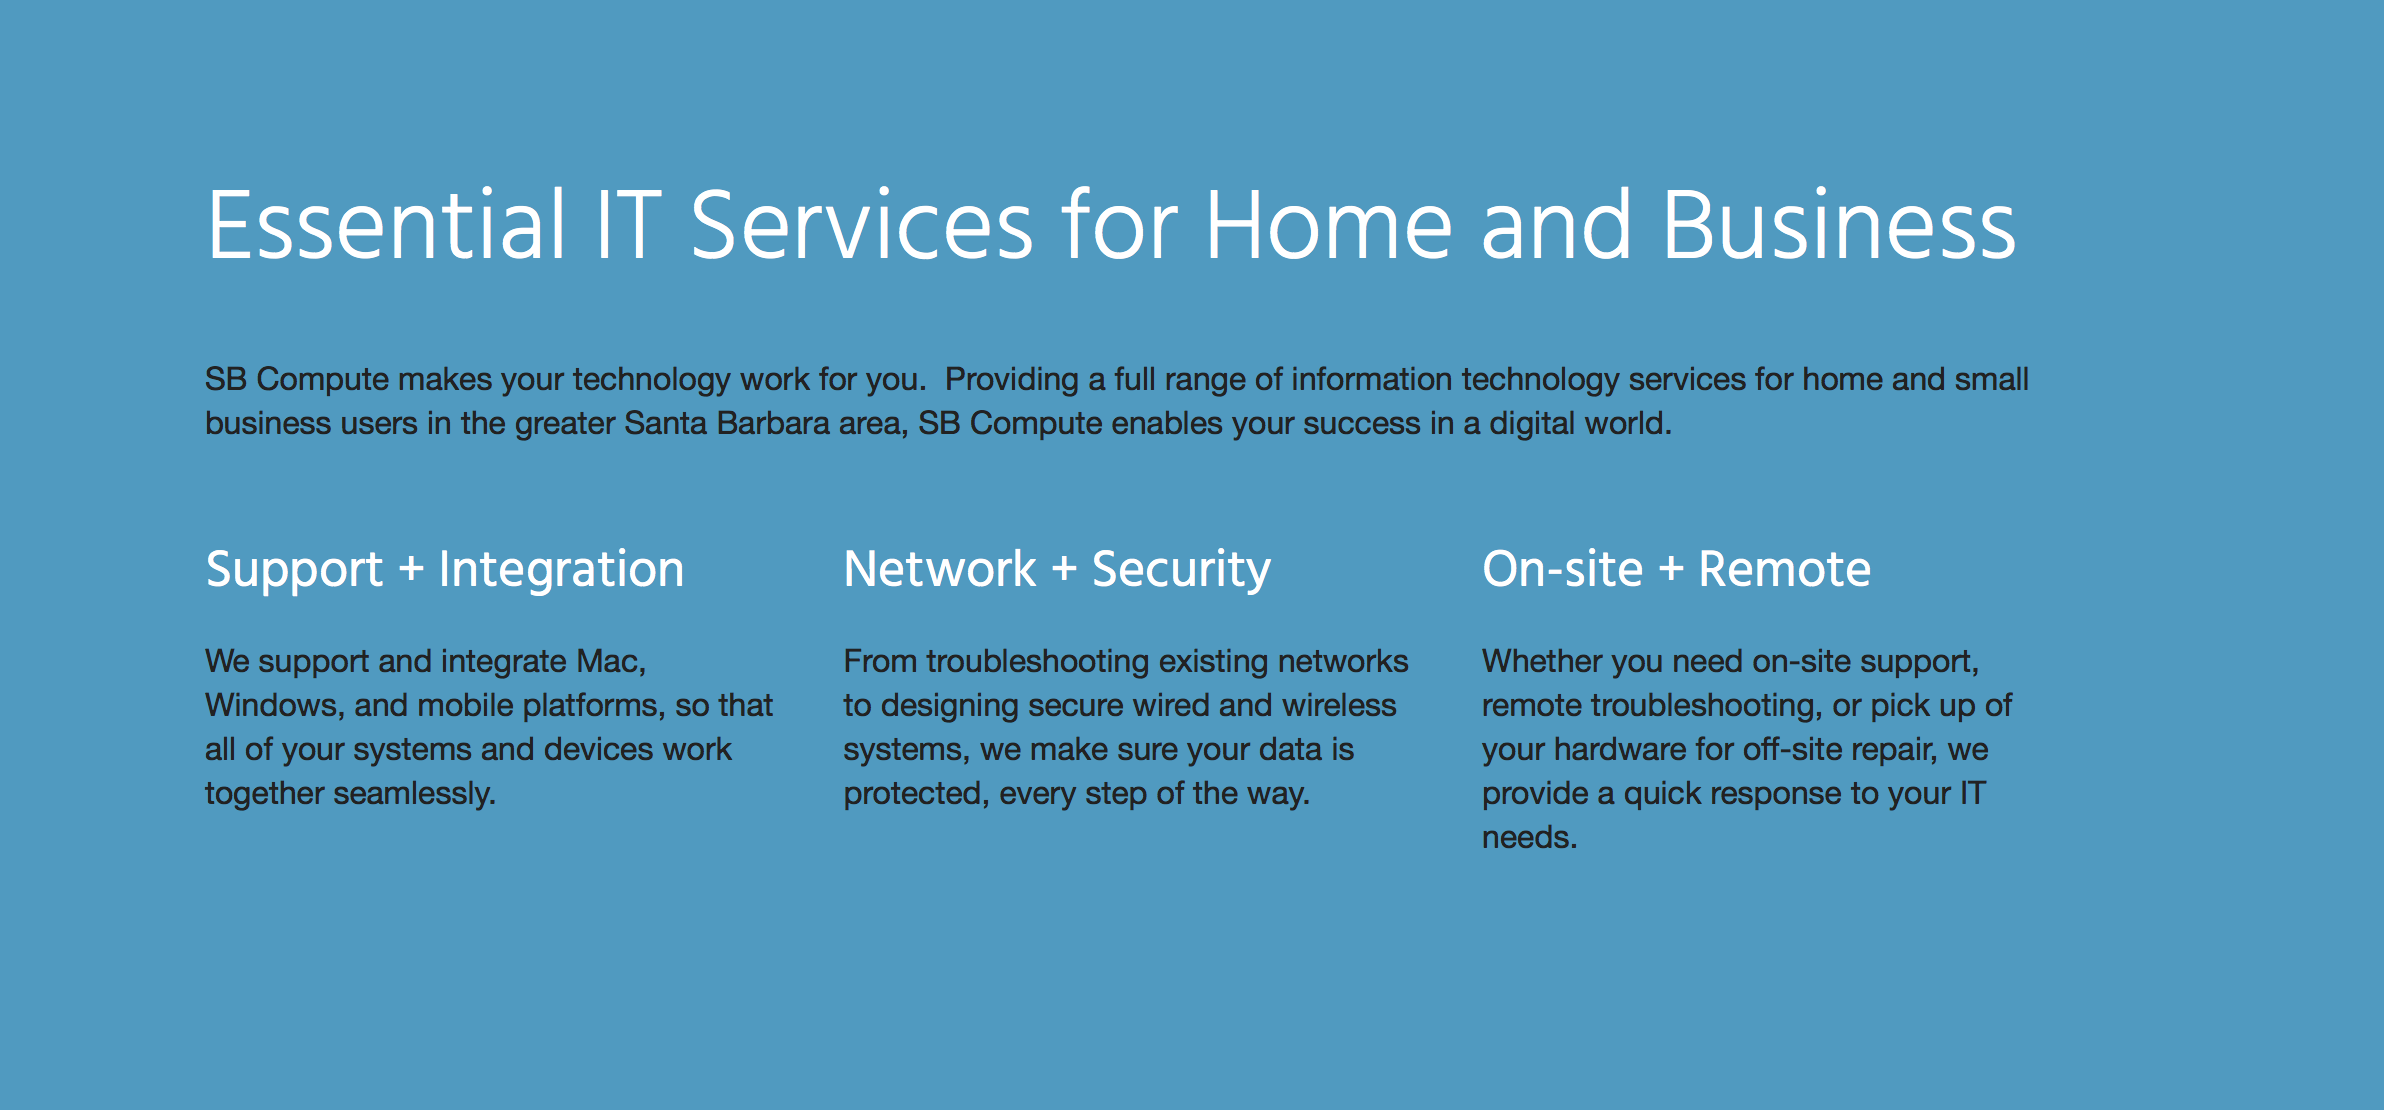 Essential IT Services for Home and Business